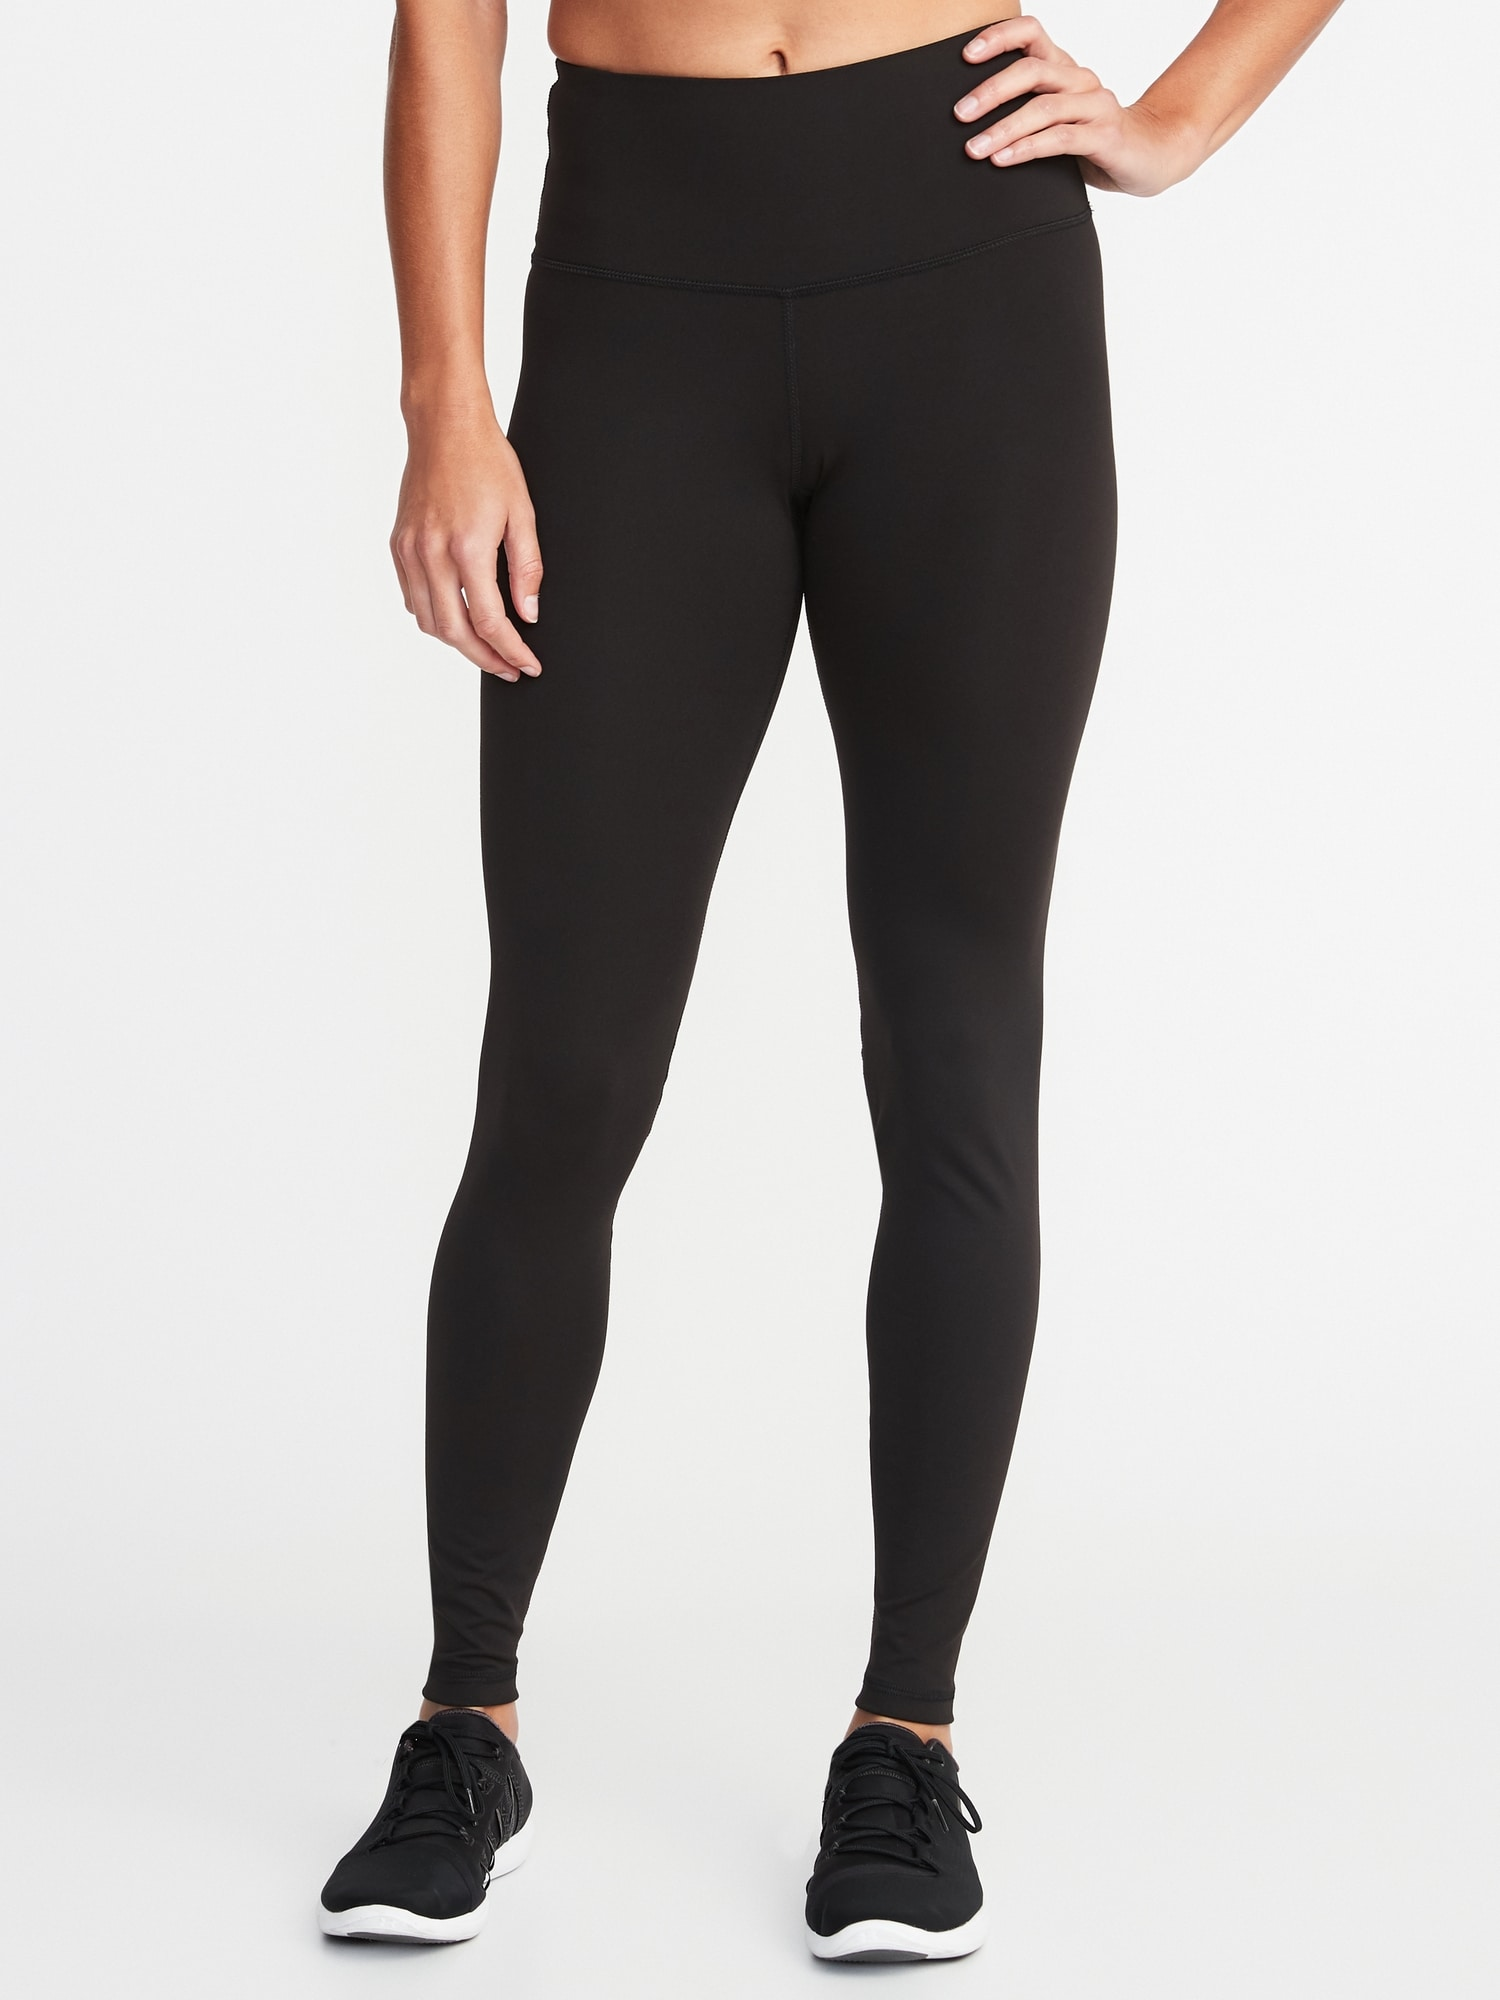 9f0f2fa24d57 High-Rise Elevate Compression Leggings for Women | Old Navy